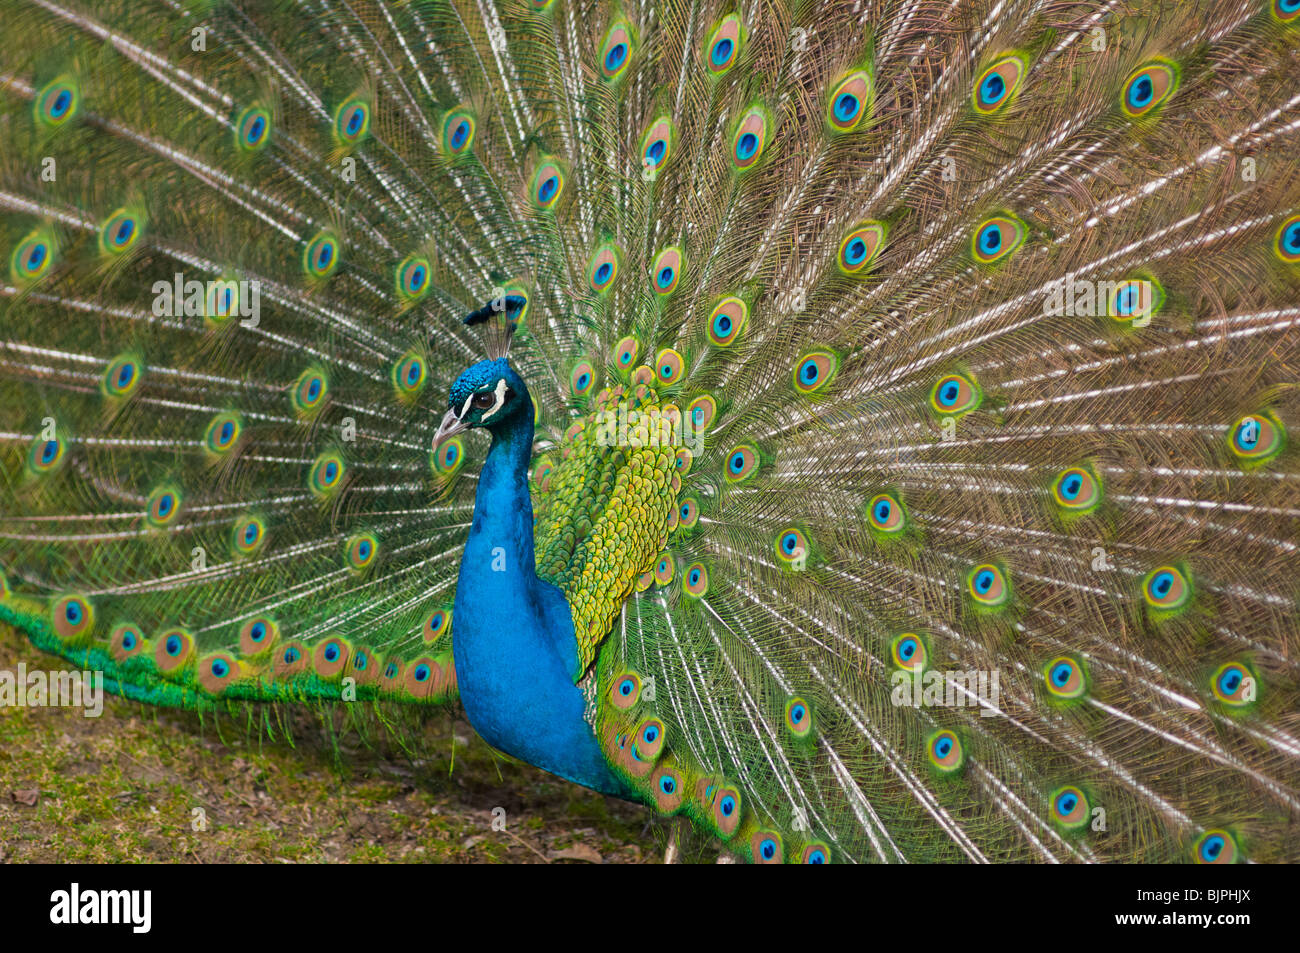 Indian Peacock with tail feathers up. Stock Photo